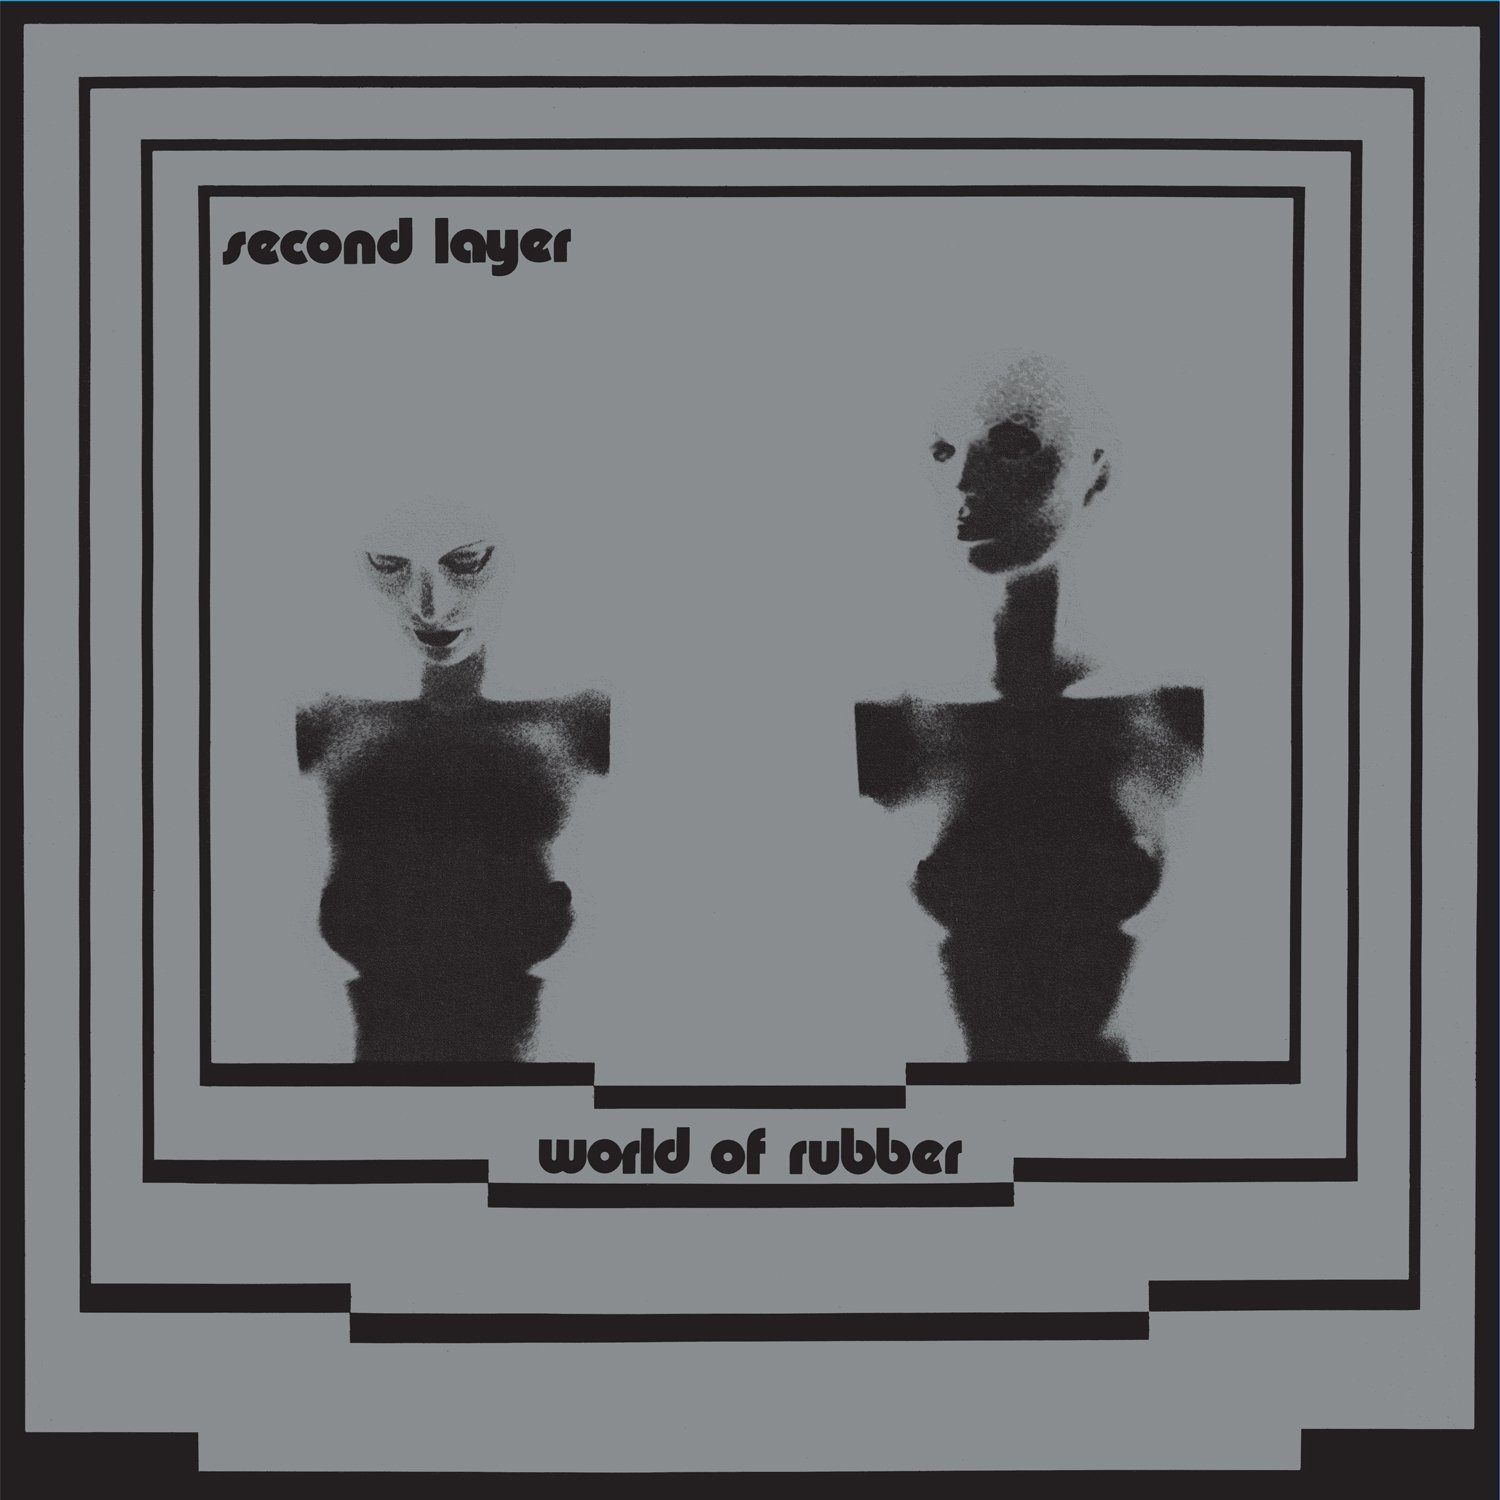 Second Layer – World of Rubber